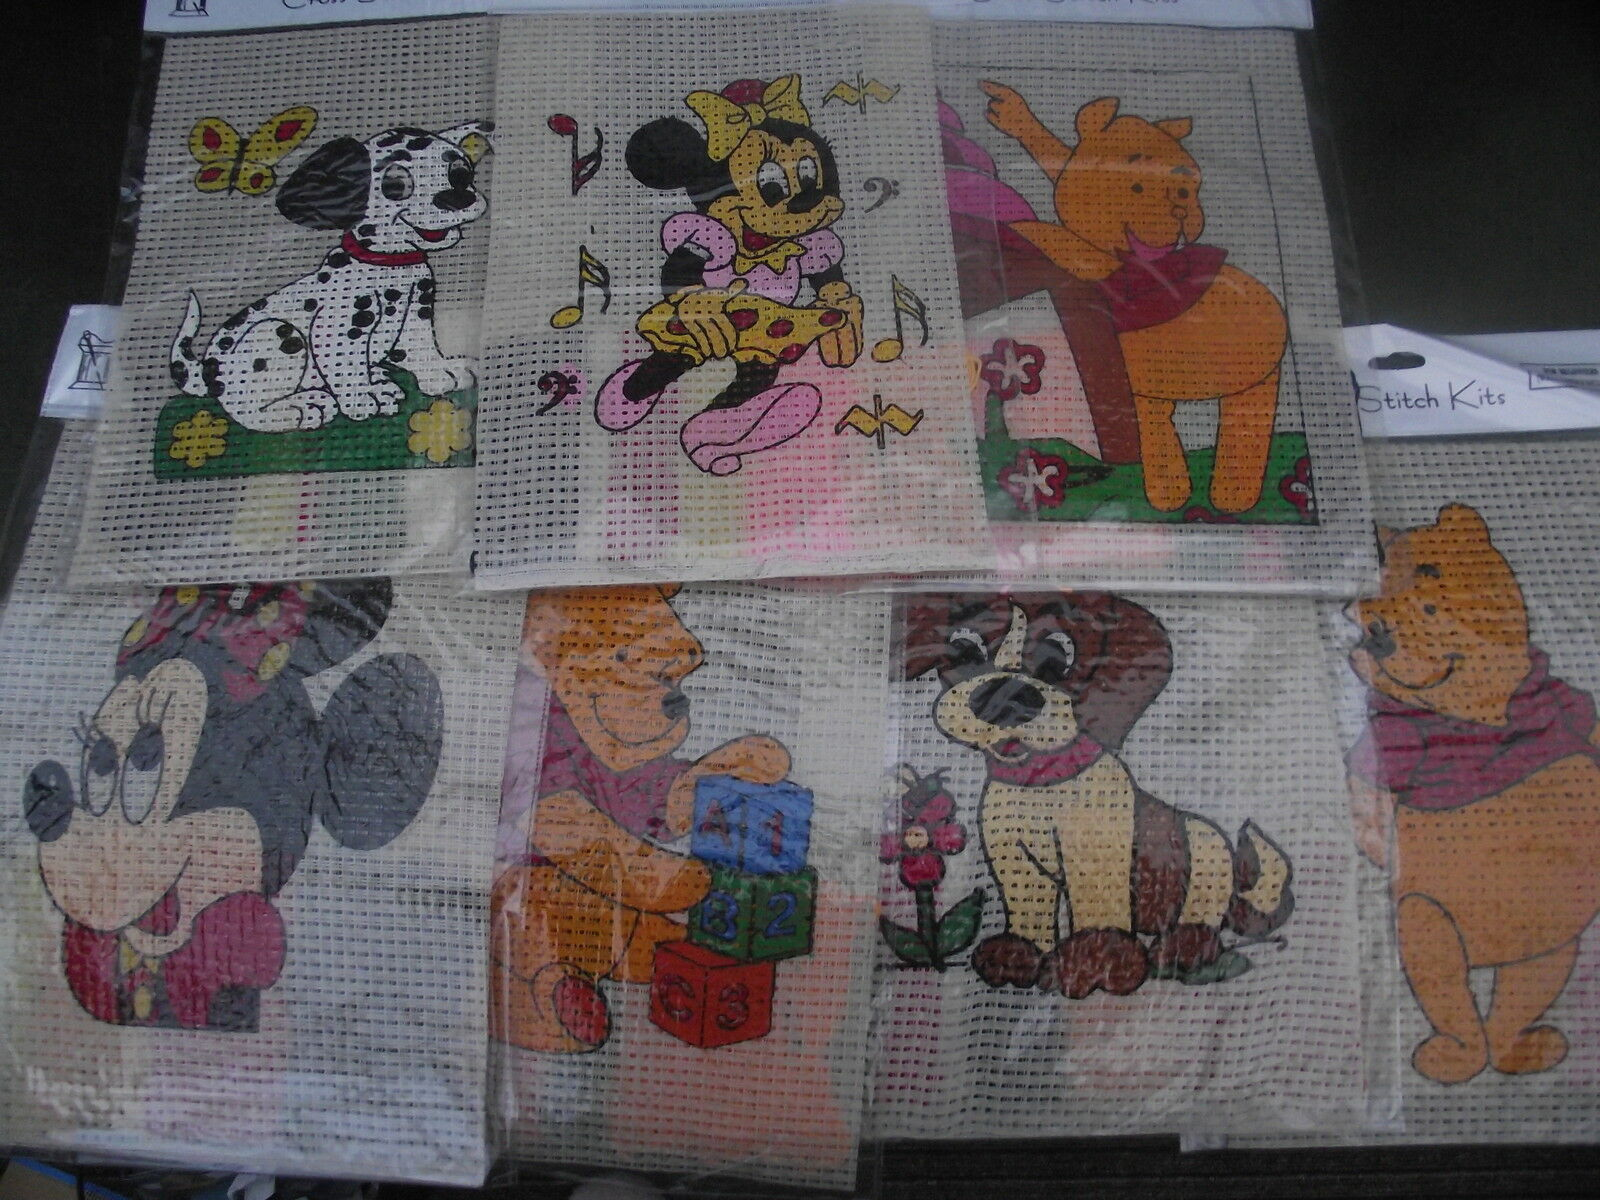 CROSS STITCH KITS FOR CHILDREN AND BEGINNERS - Choice Of Designs - U00a35.75 | PicClick UK